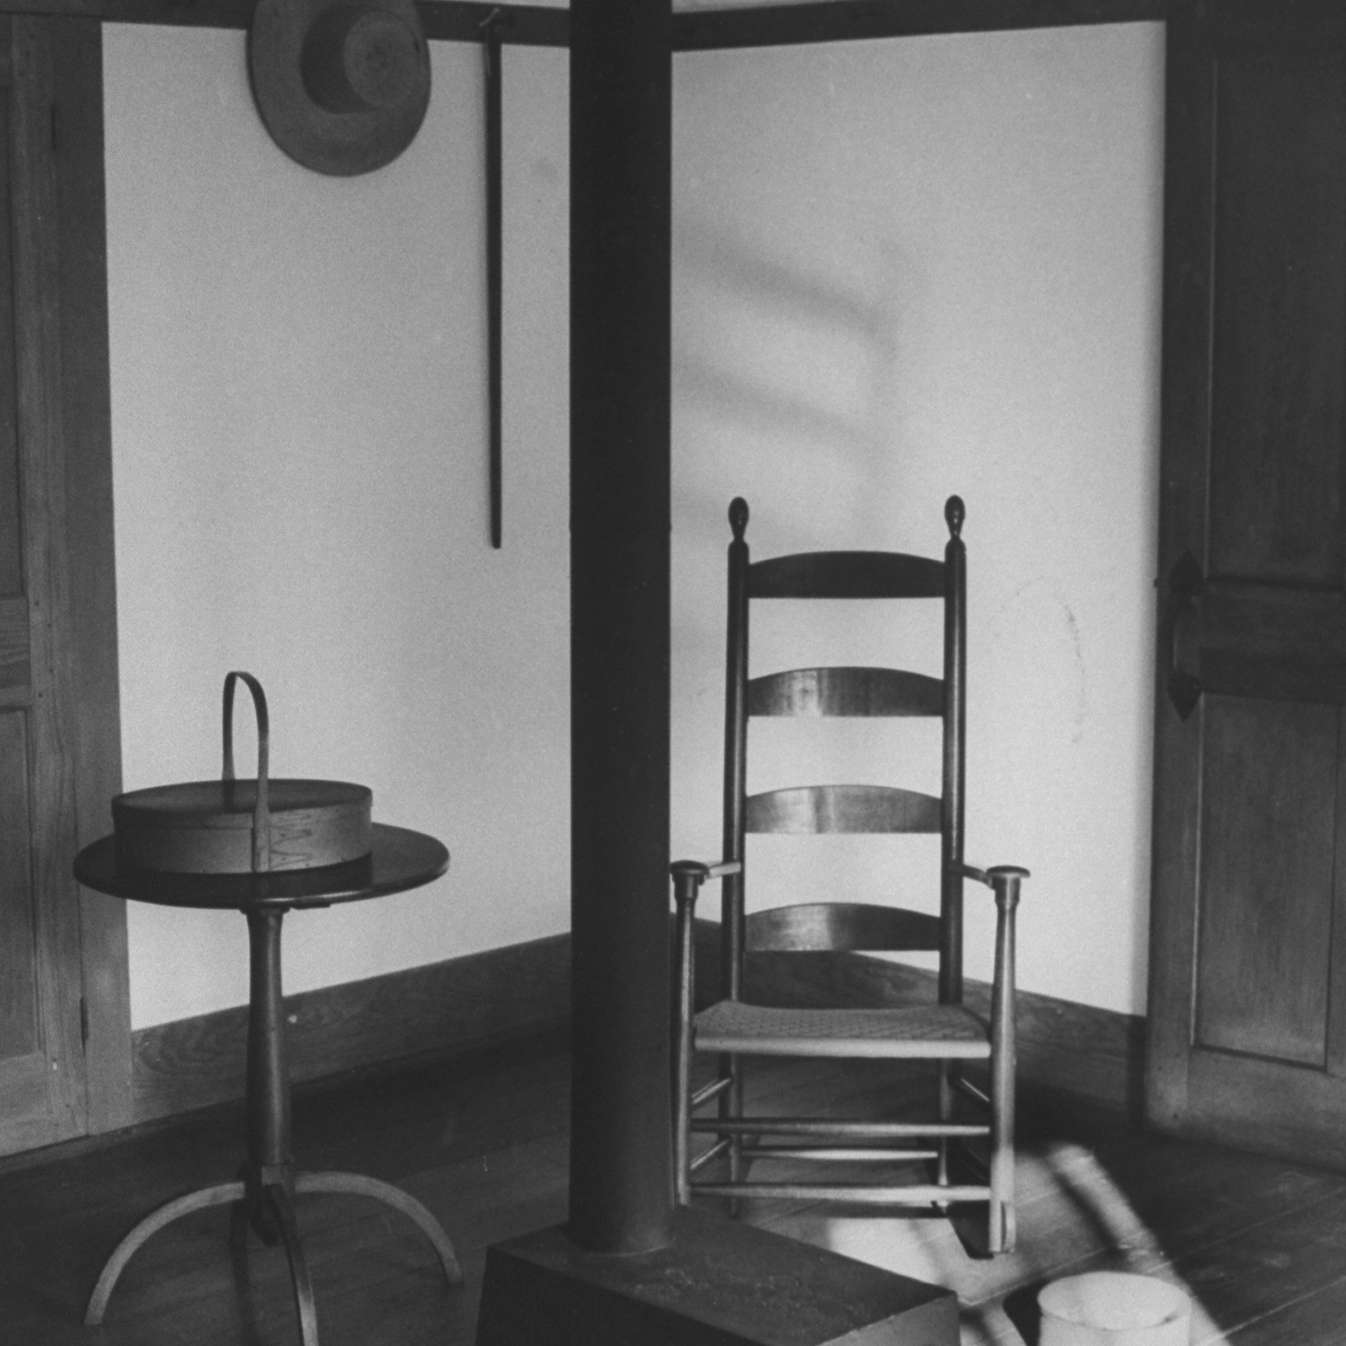 Iron woodstove w. a ladder-backed wooden